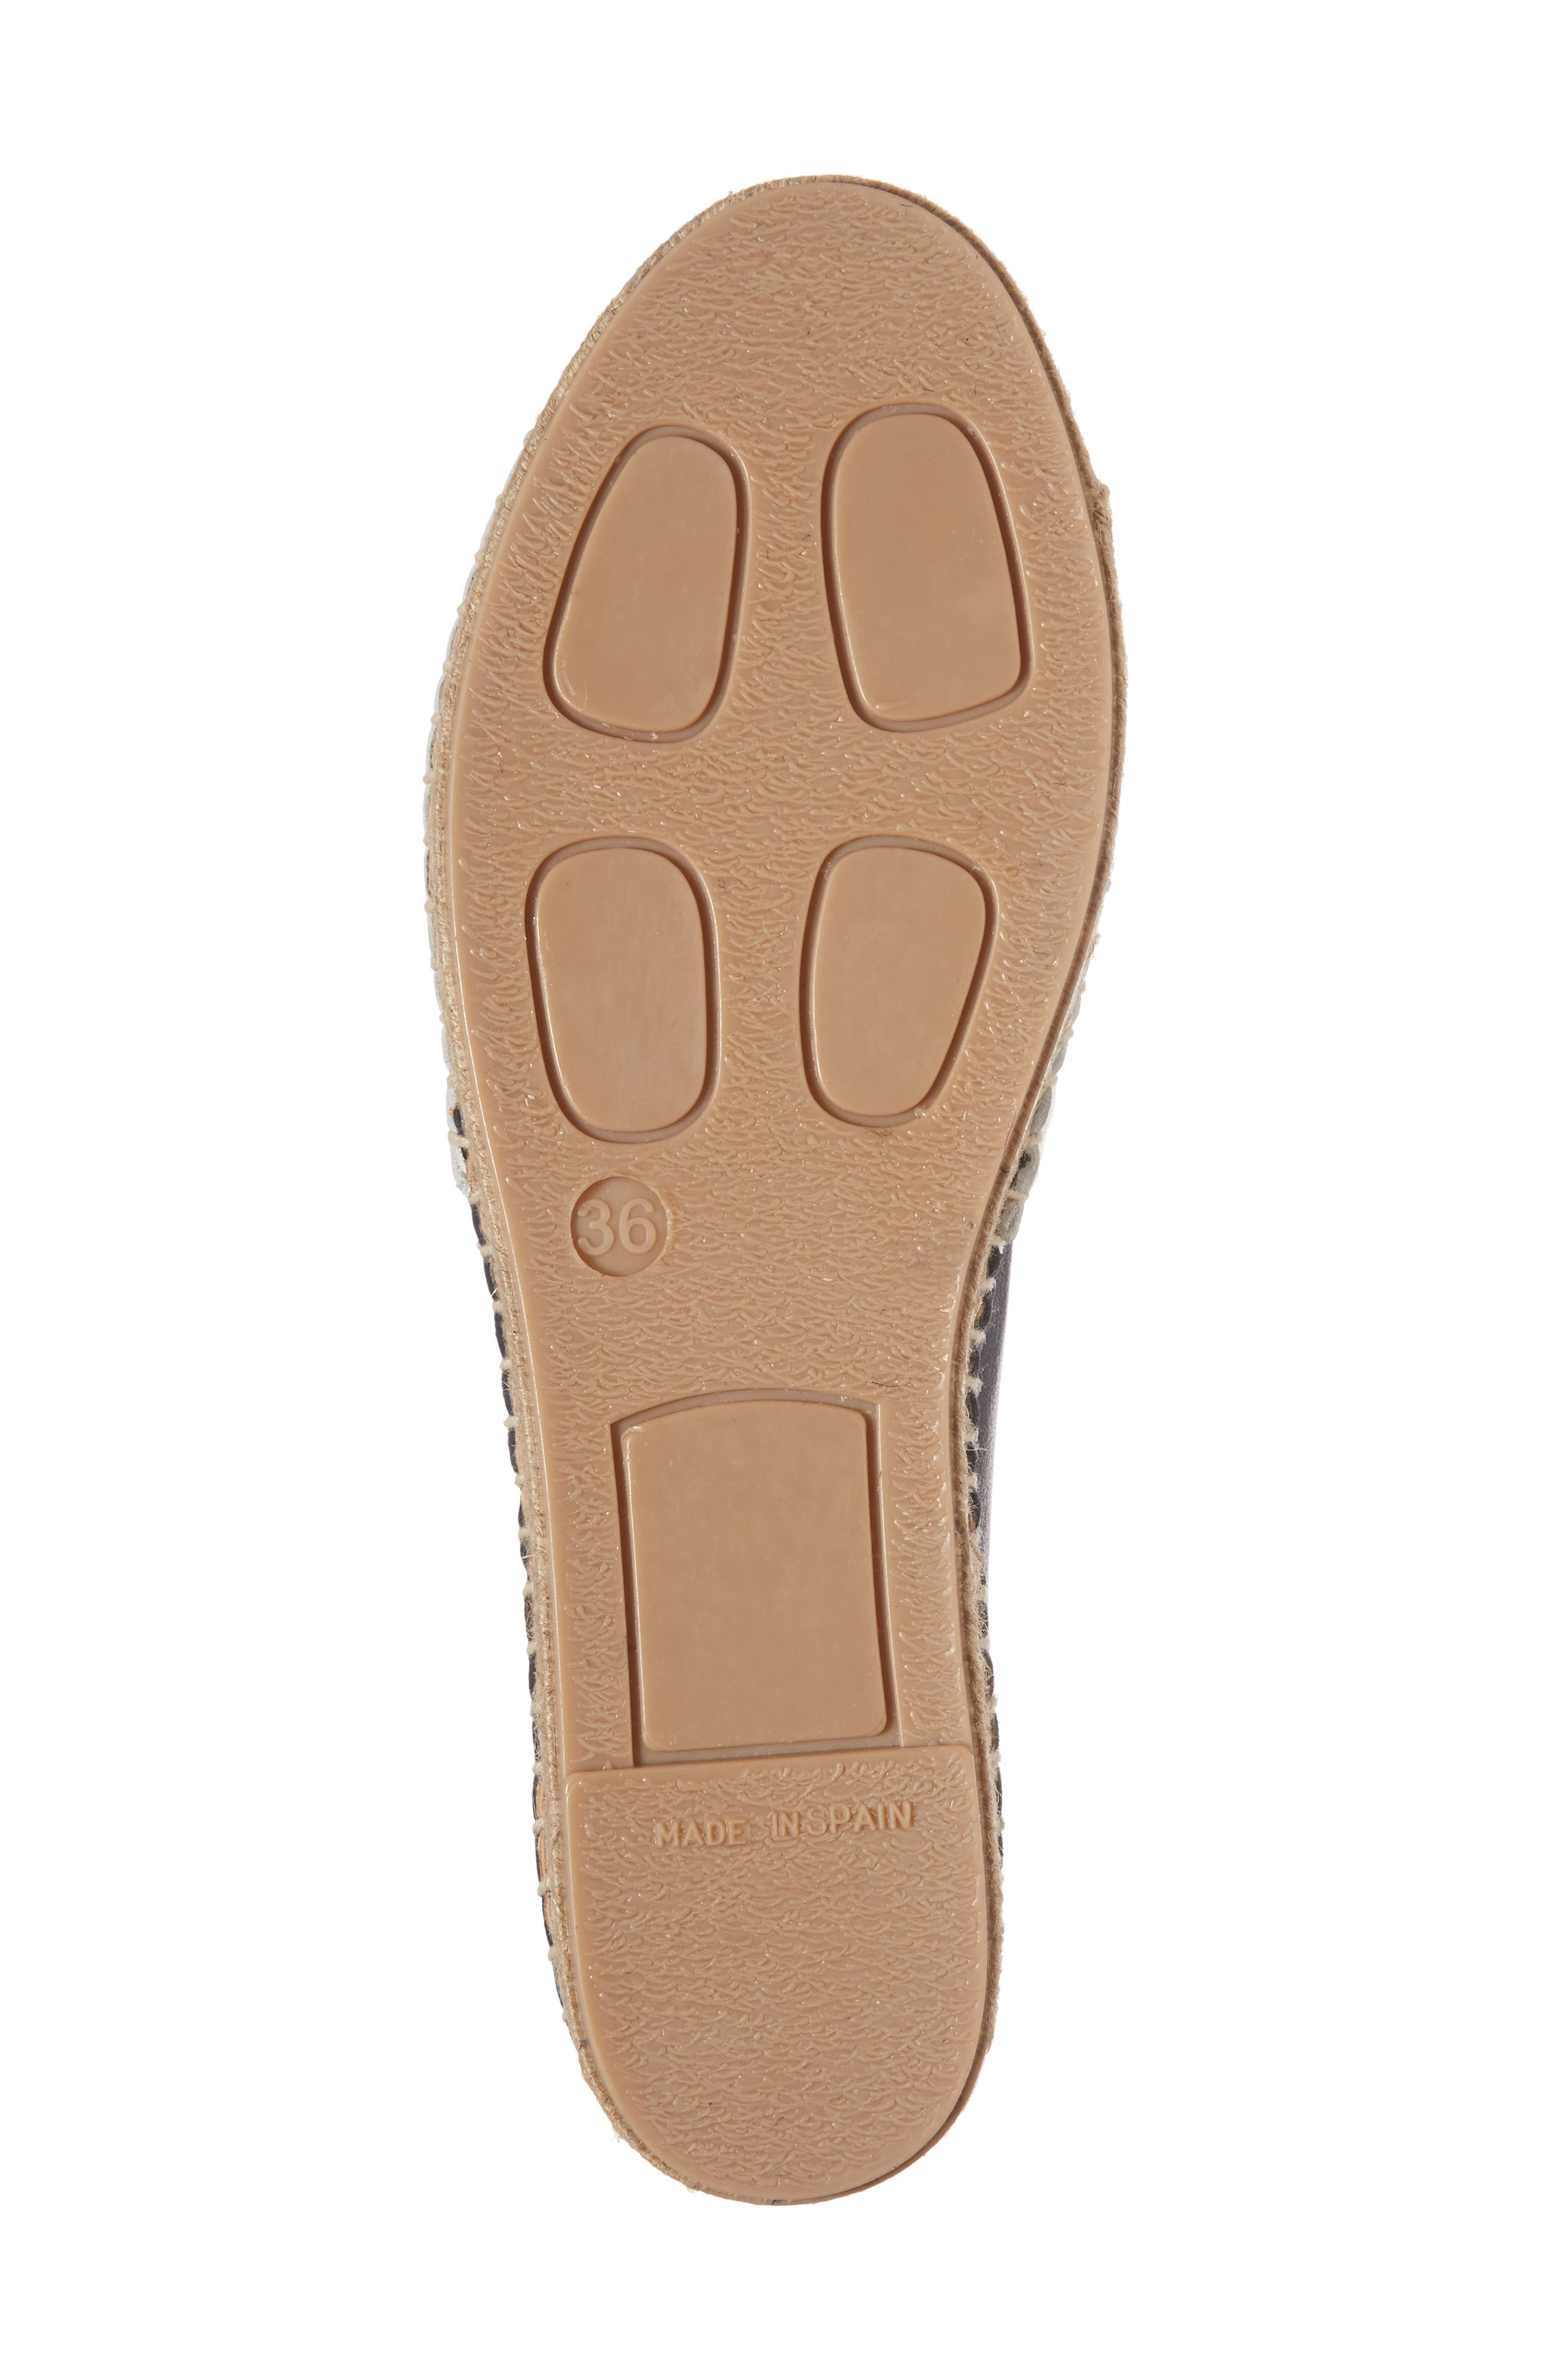 Milly Espadrille,                             Alternate thumbnail 6, color,                             415